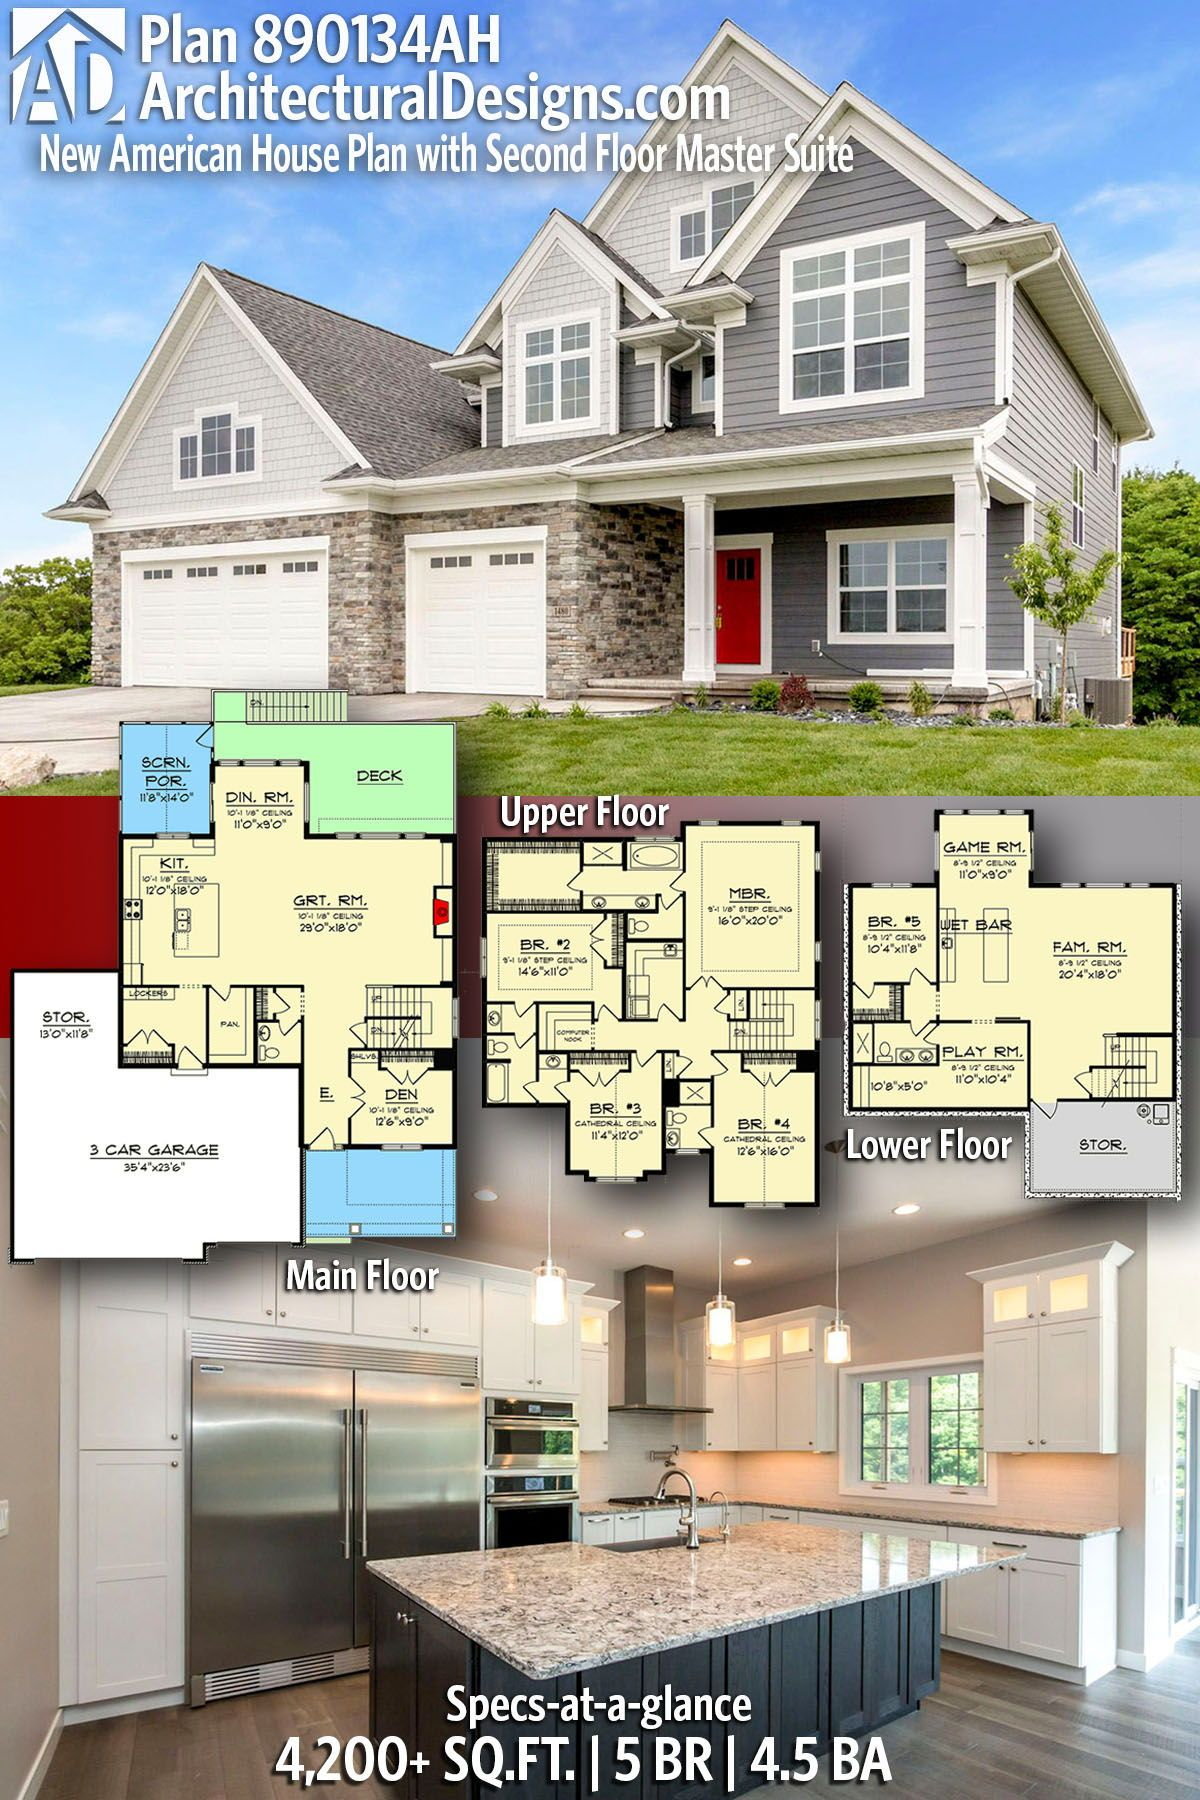 Plan 890134ah New American House Plan With Second Floor Master Suite In 2020 Craftsman House Plans American Houses House Plans